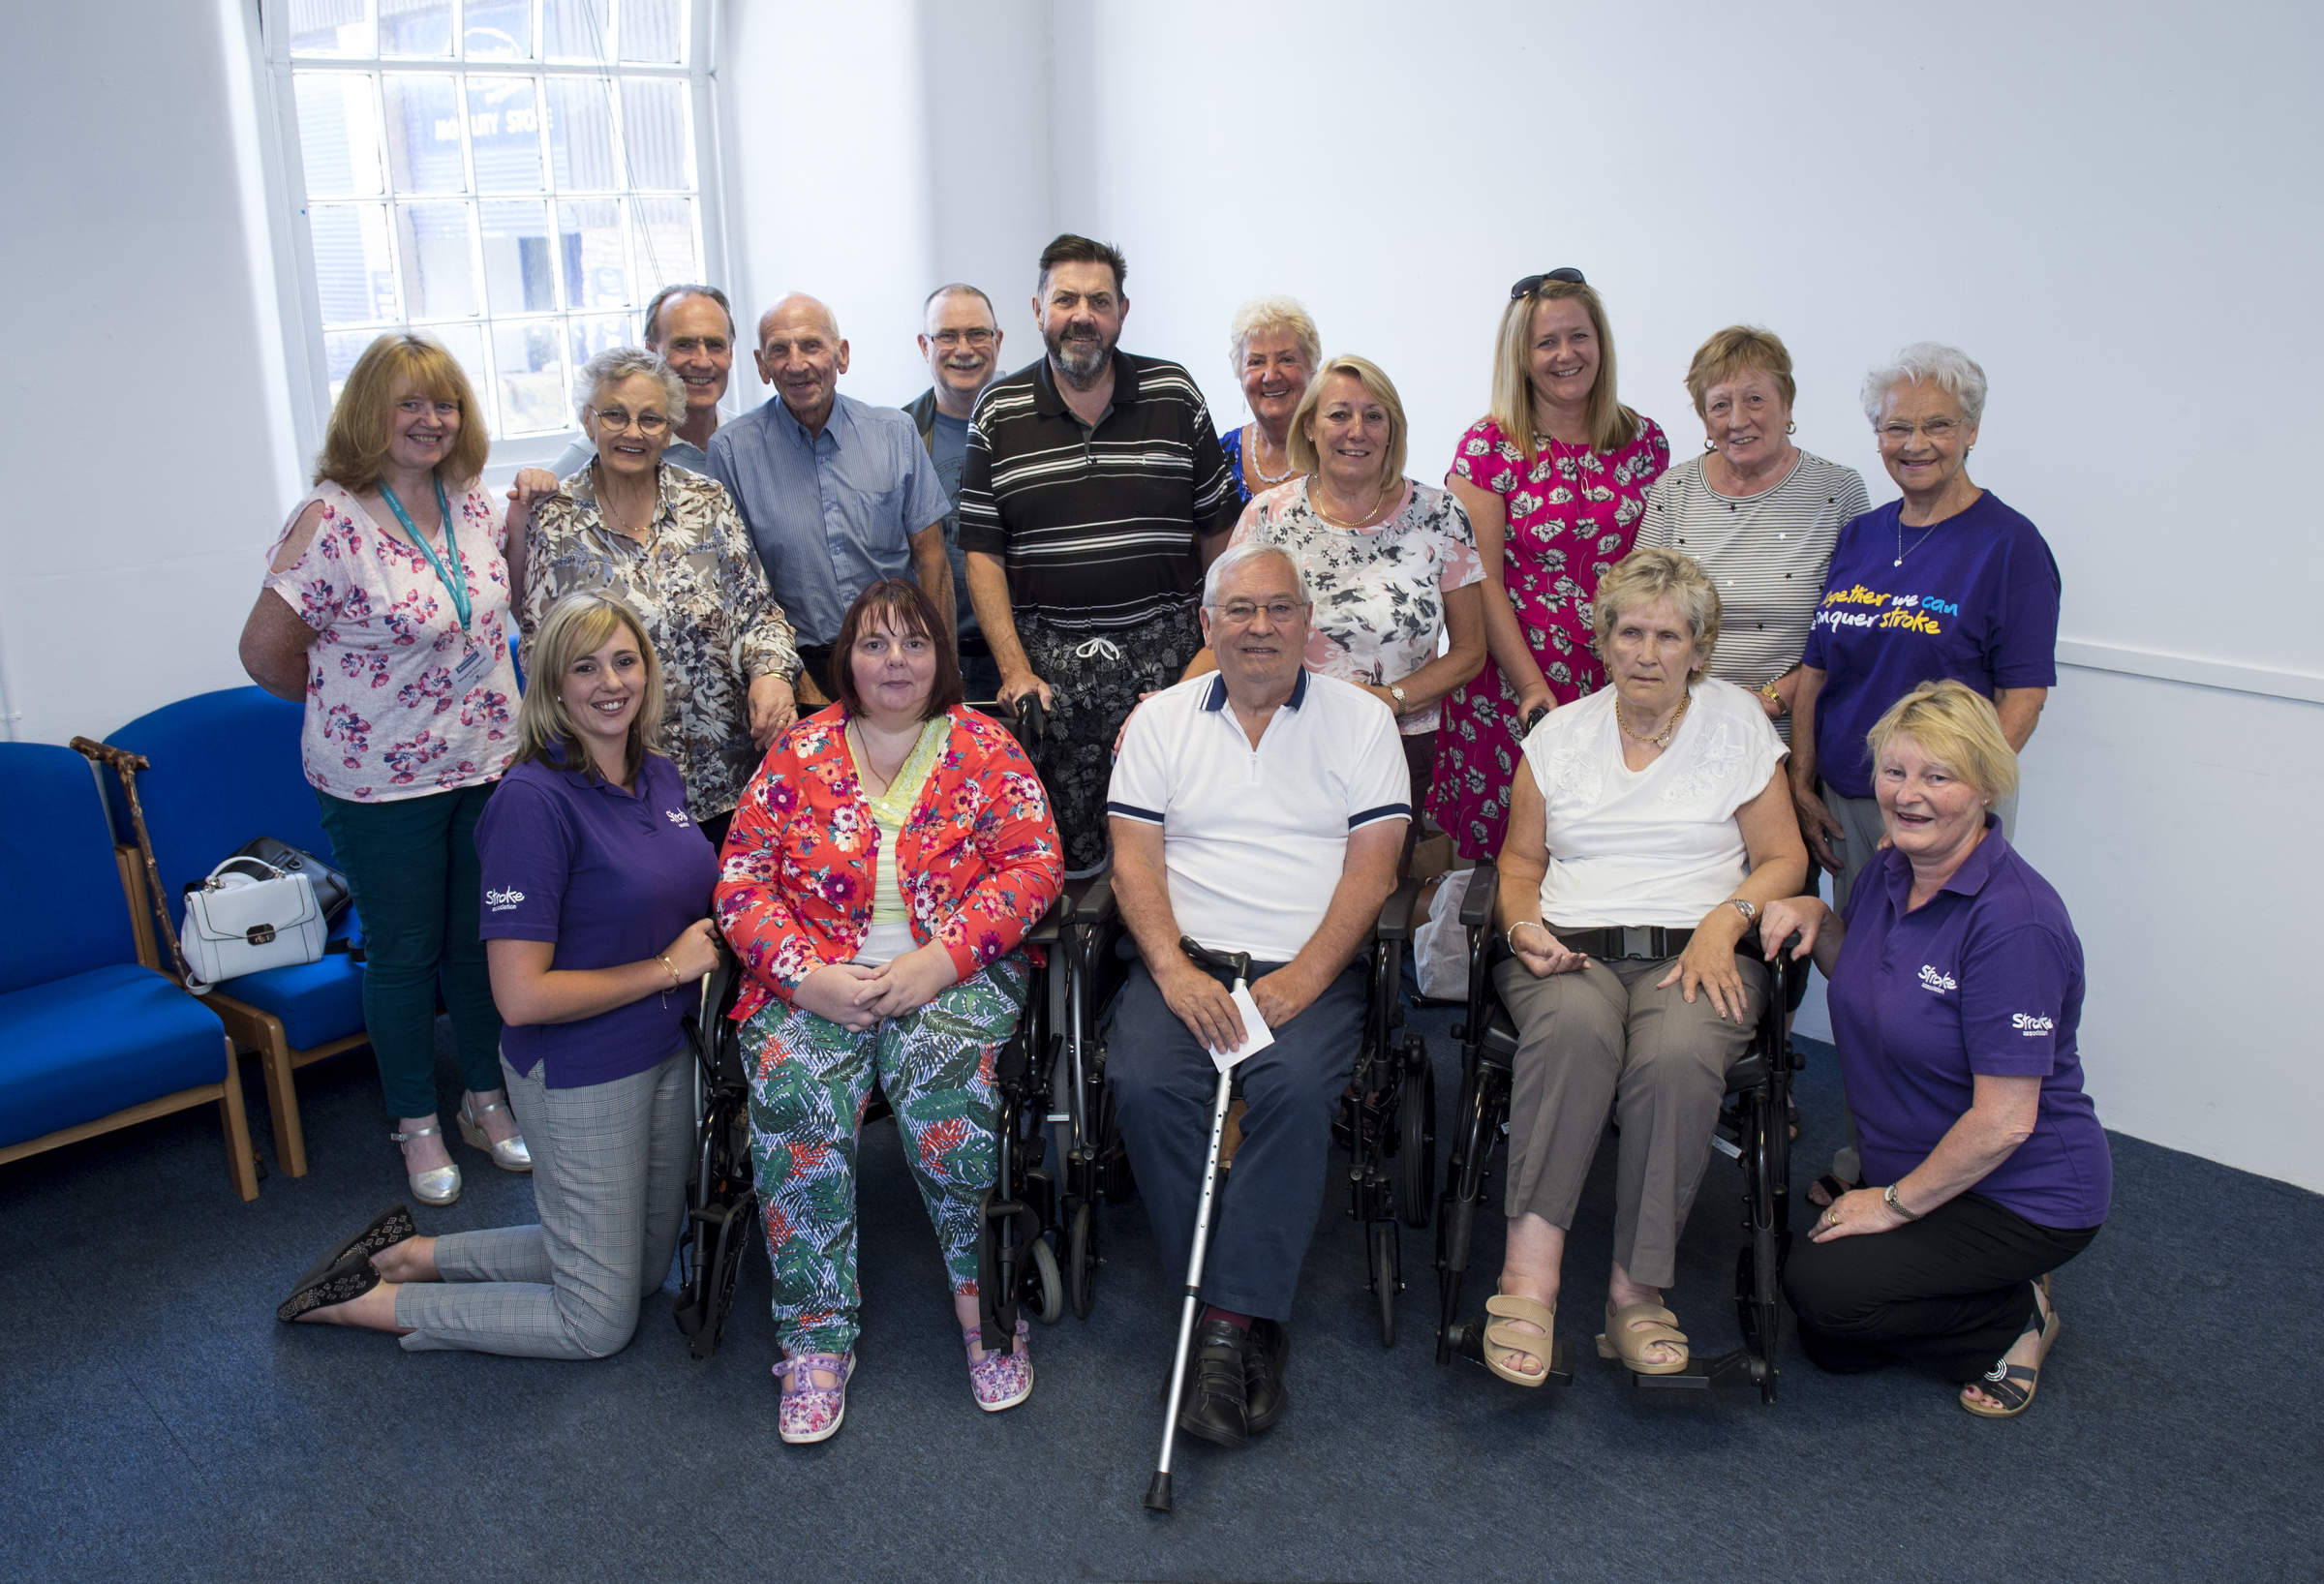 The Stroke Association Support Group